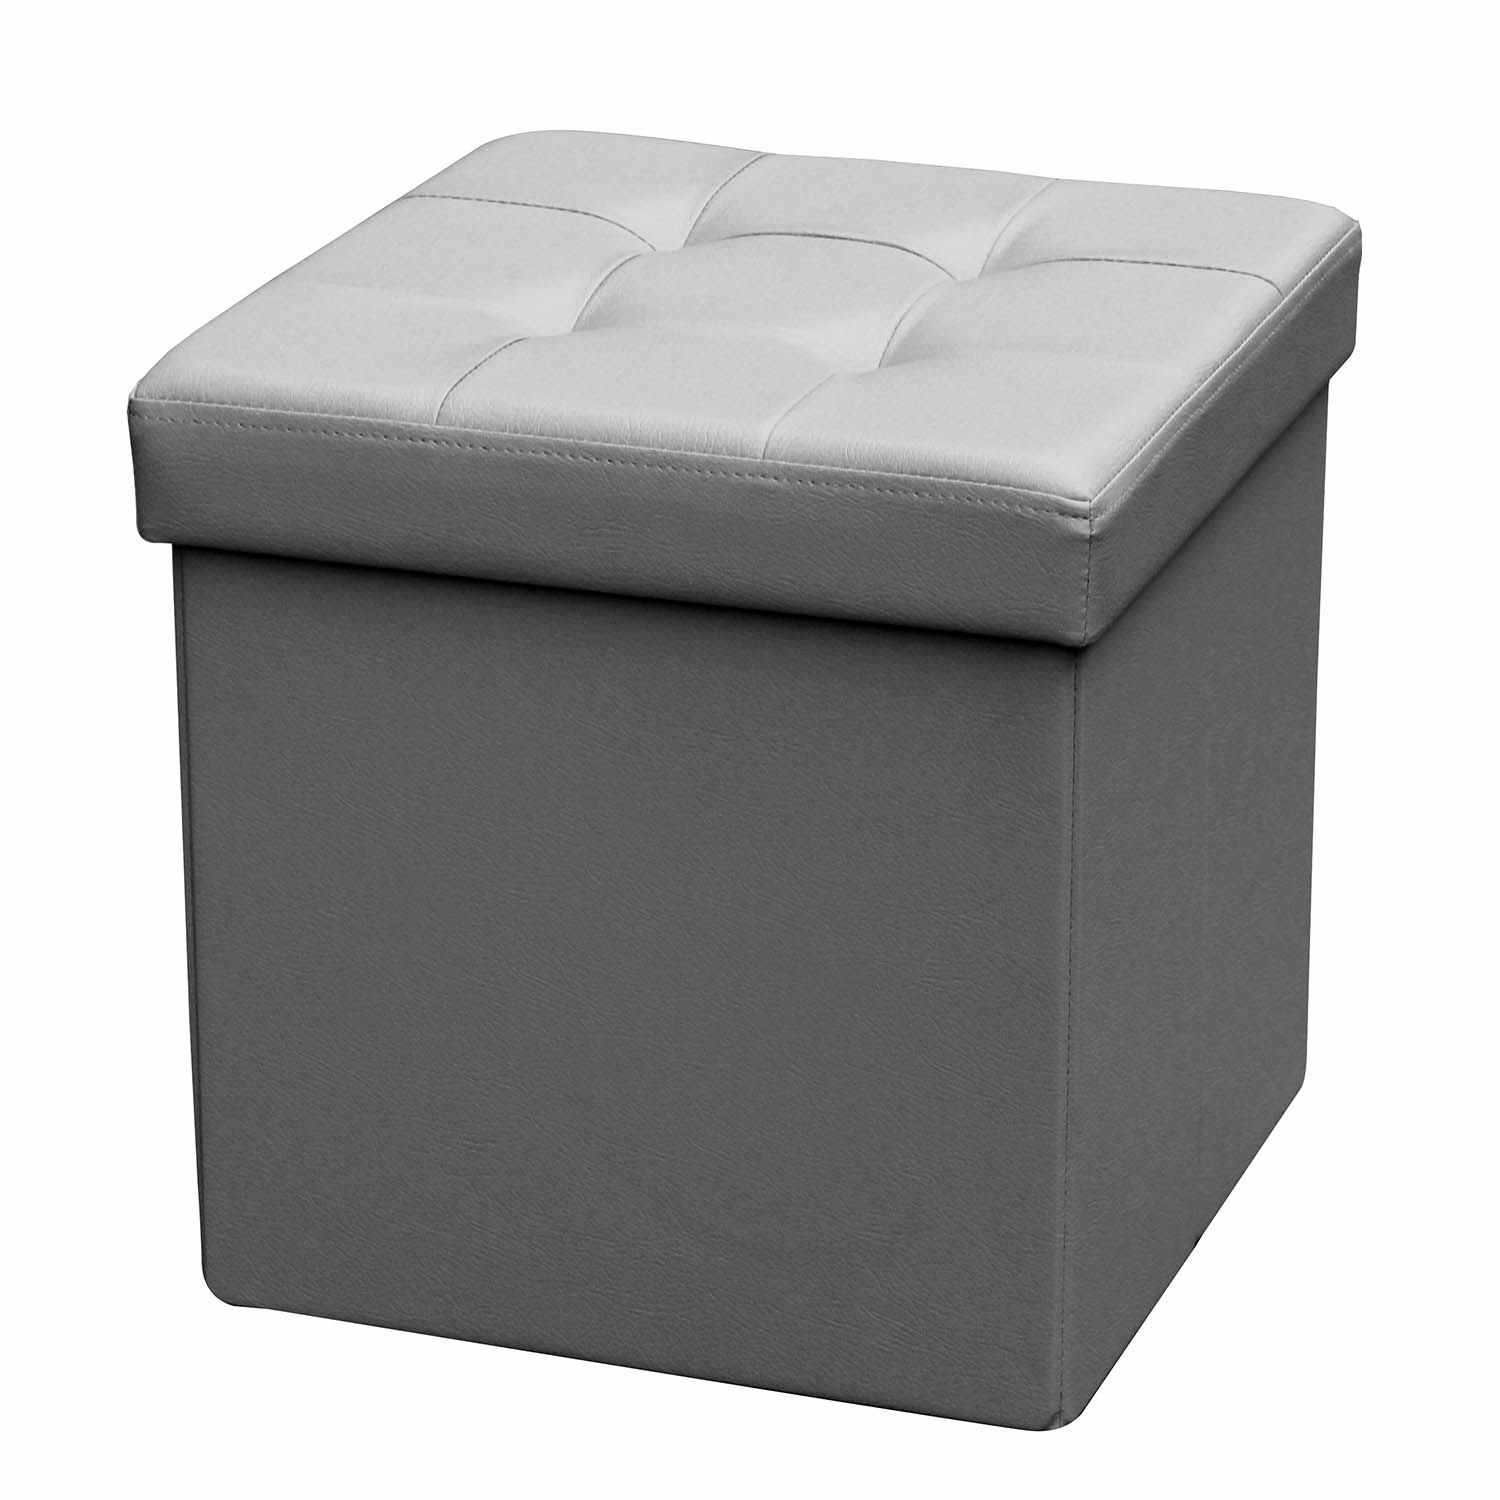 deco in paris 0 pouf coffre carre pliable gris pouf carre pliable gris. Black Bedroom Furniture Sets. Home Design Ideas